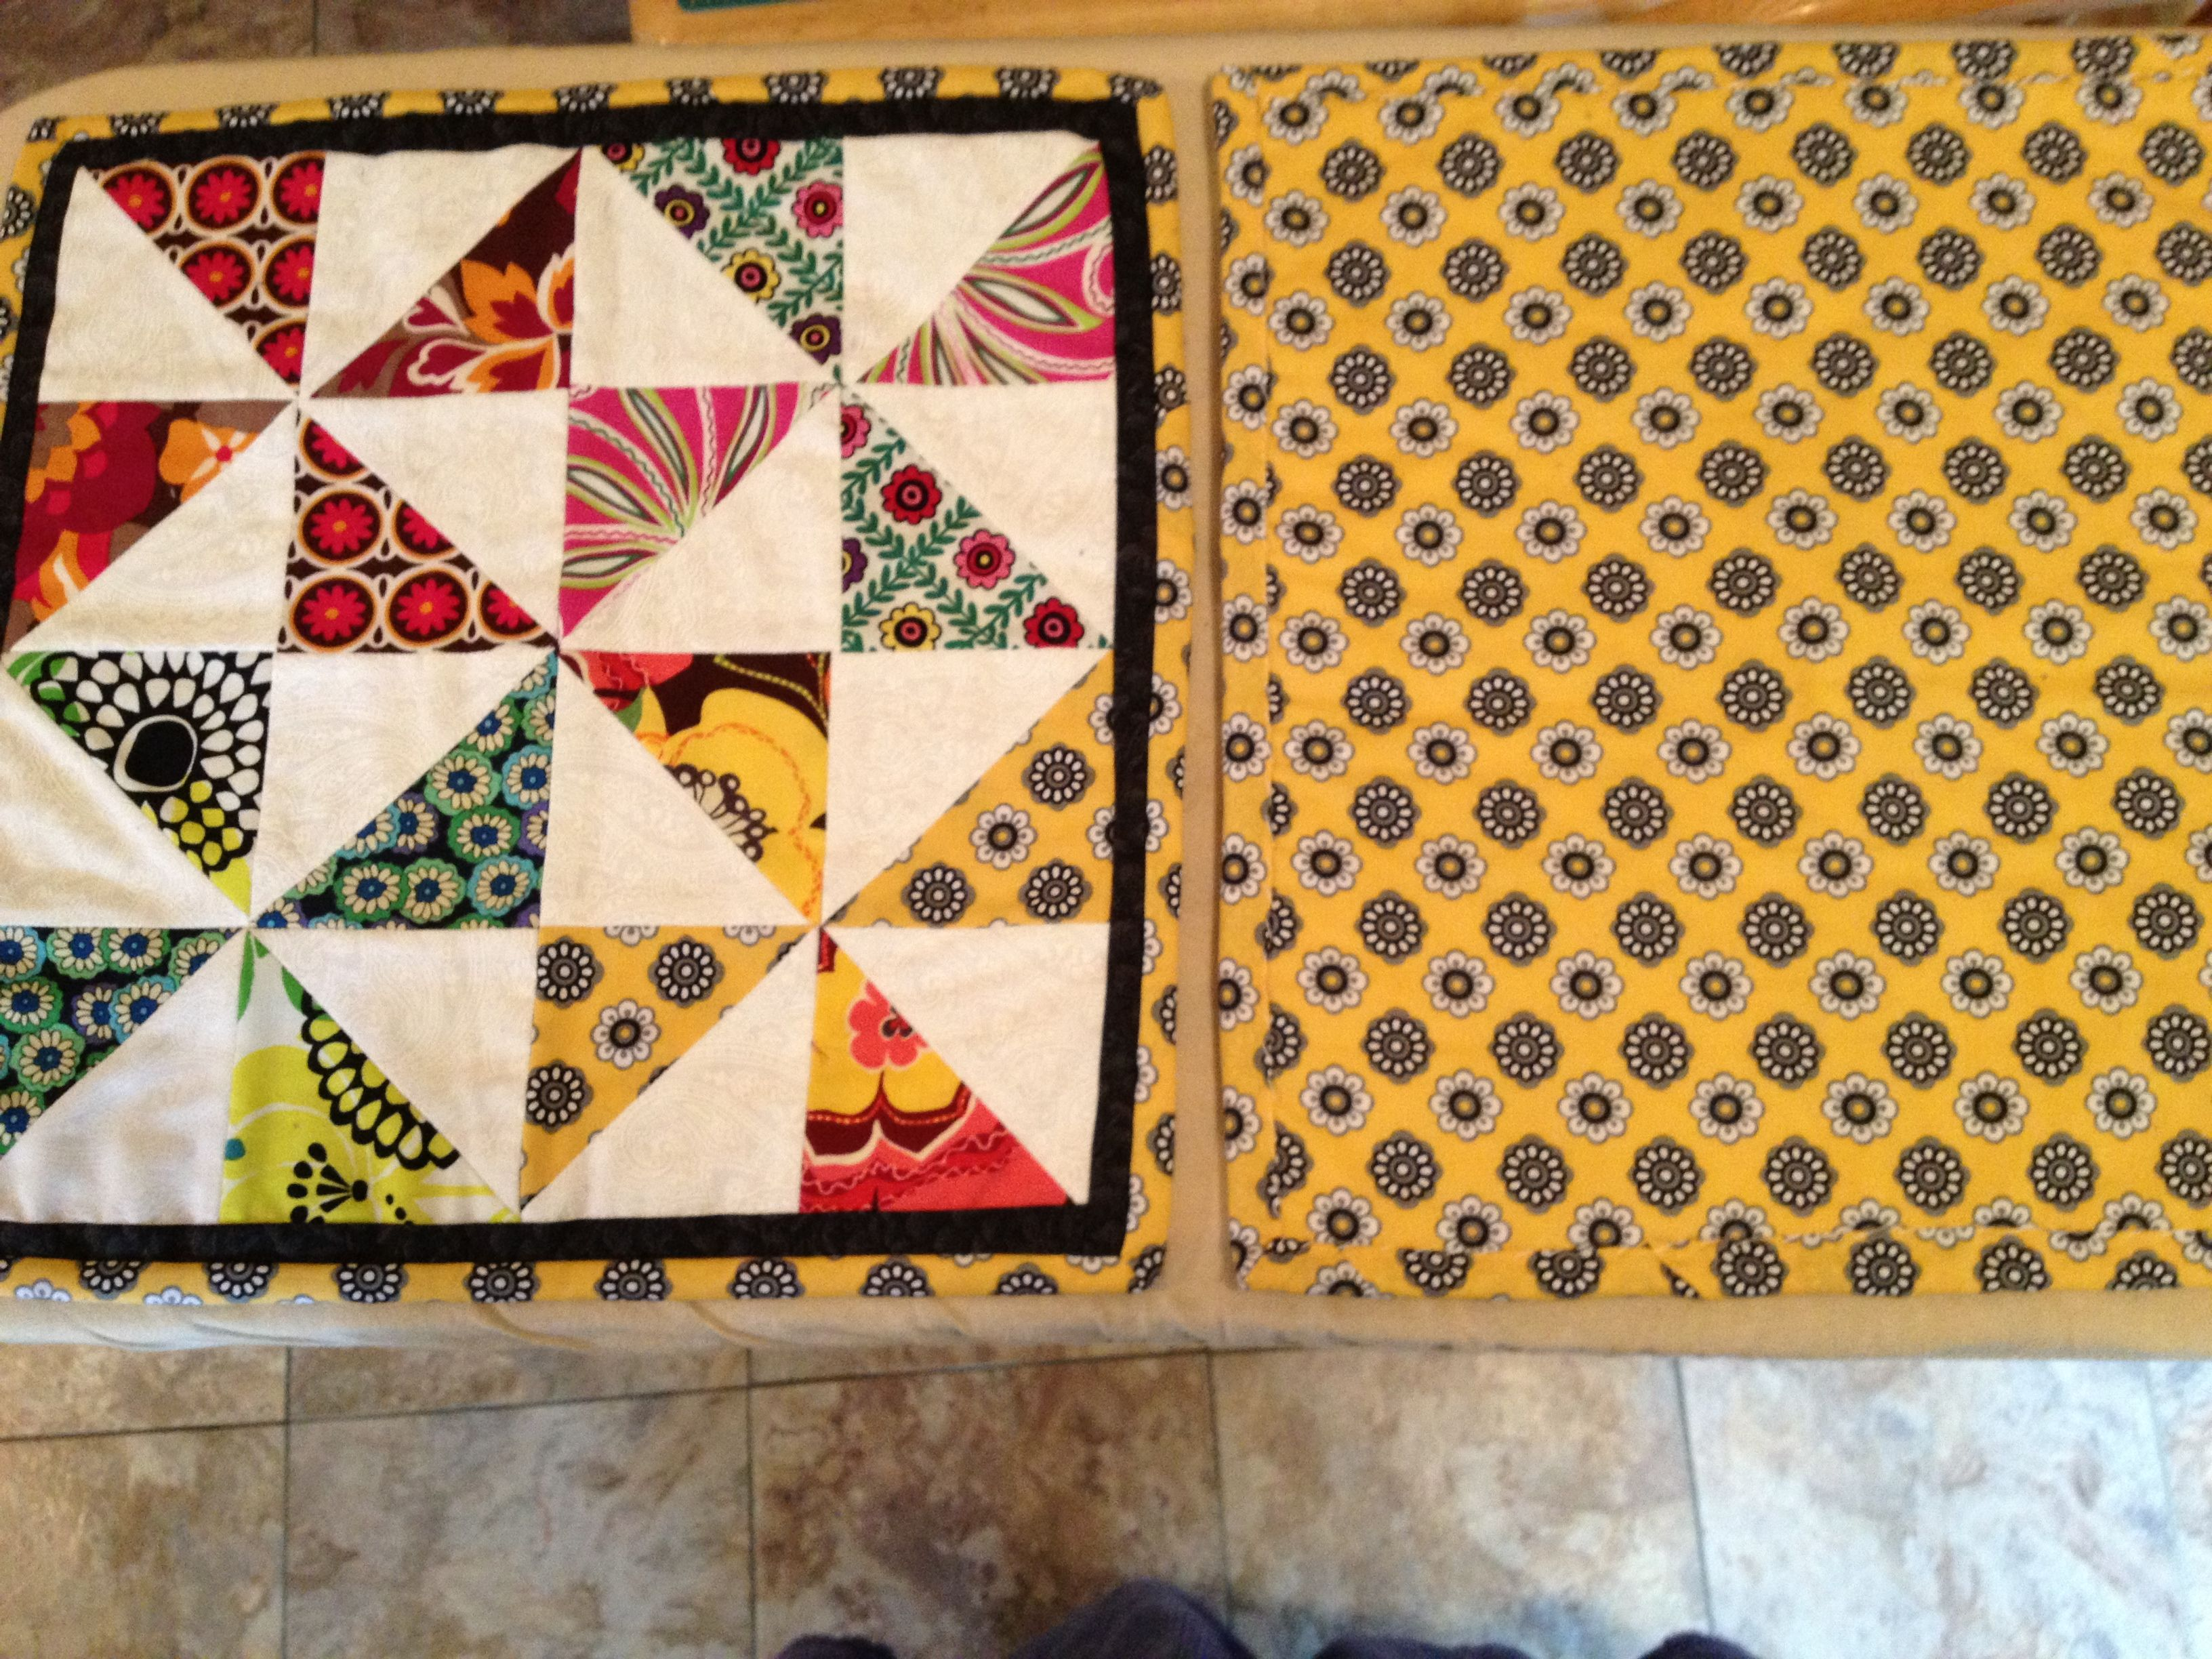 front and back of table mat